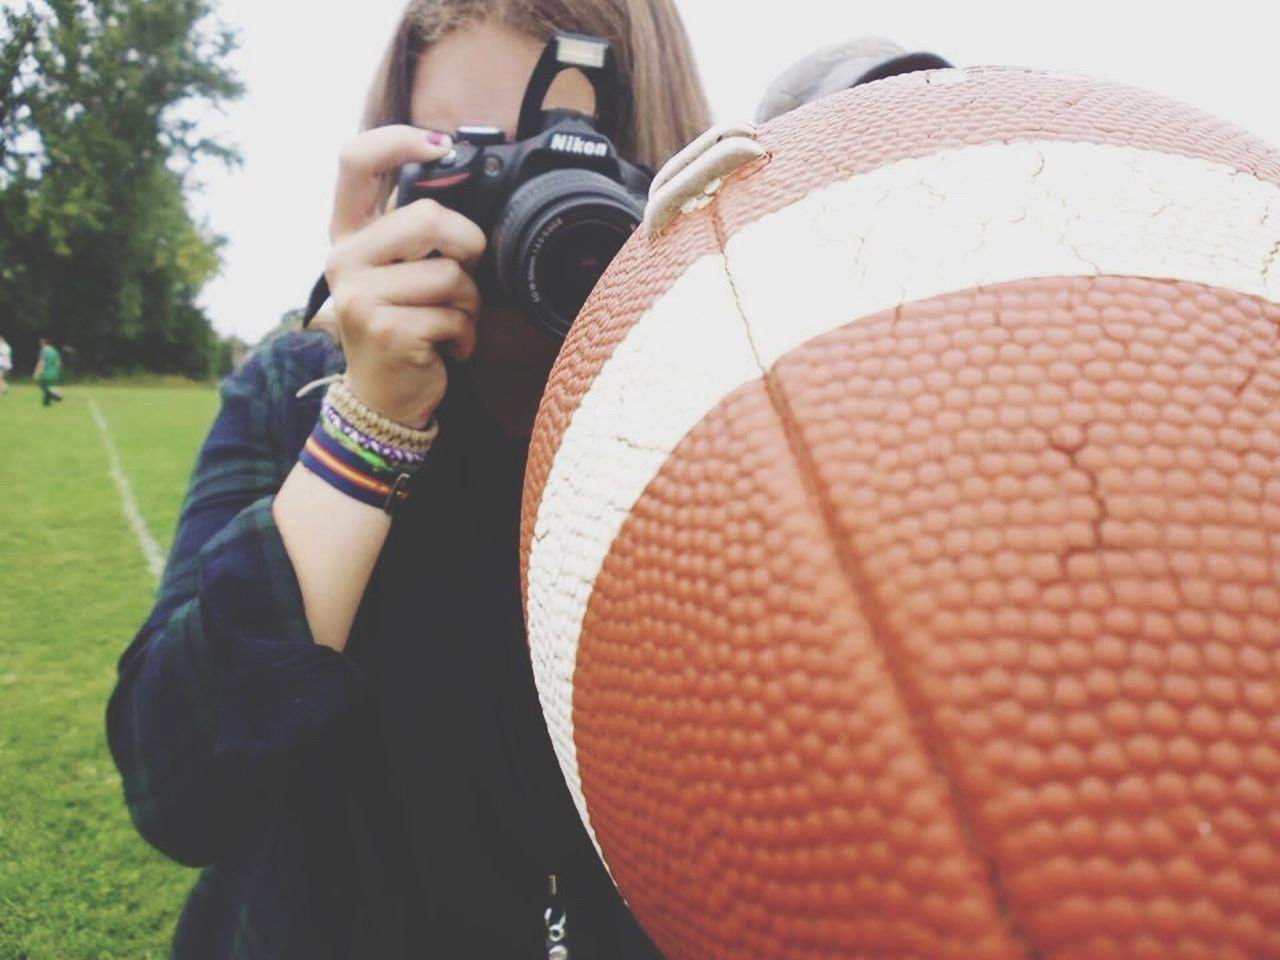 real people, leisure activity, one person, lifestyles, holding, day, photographing, outdoors, photography themes, ball, playing, sport, technology, women, young women, camera - photographic equipment, basketball - sport, young adult, close-up, adult, people